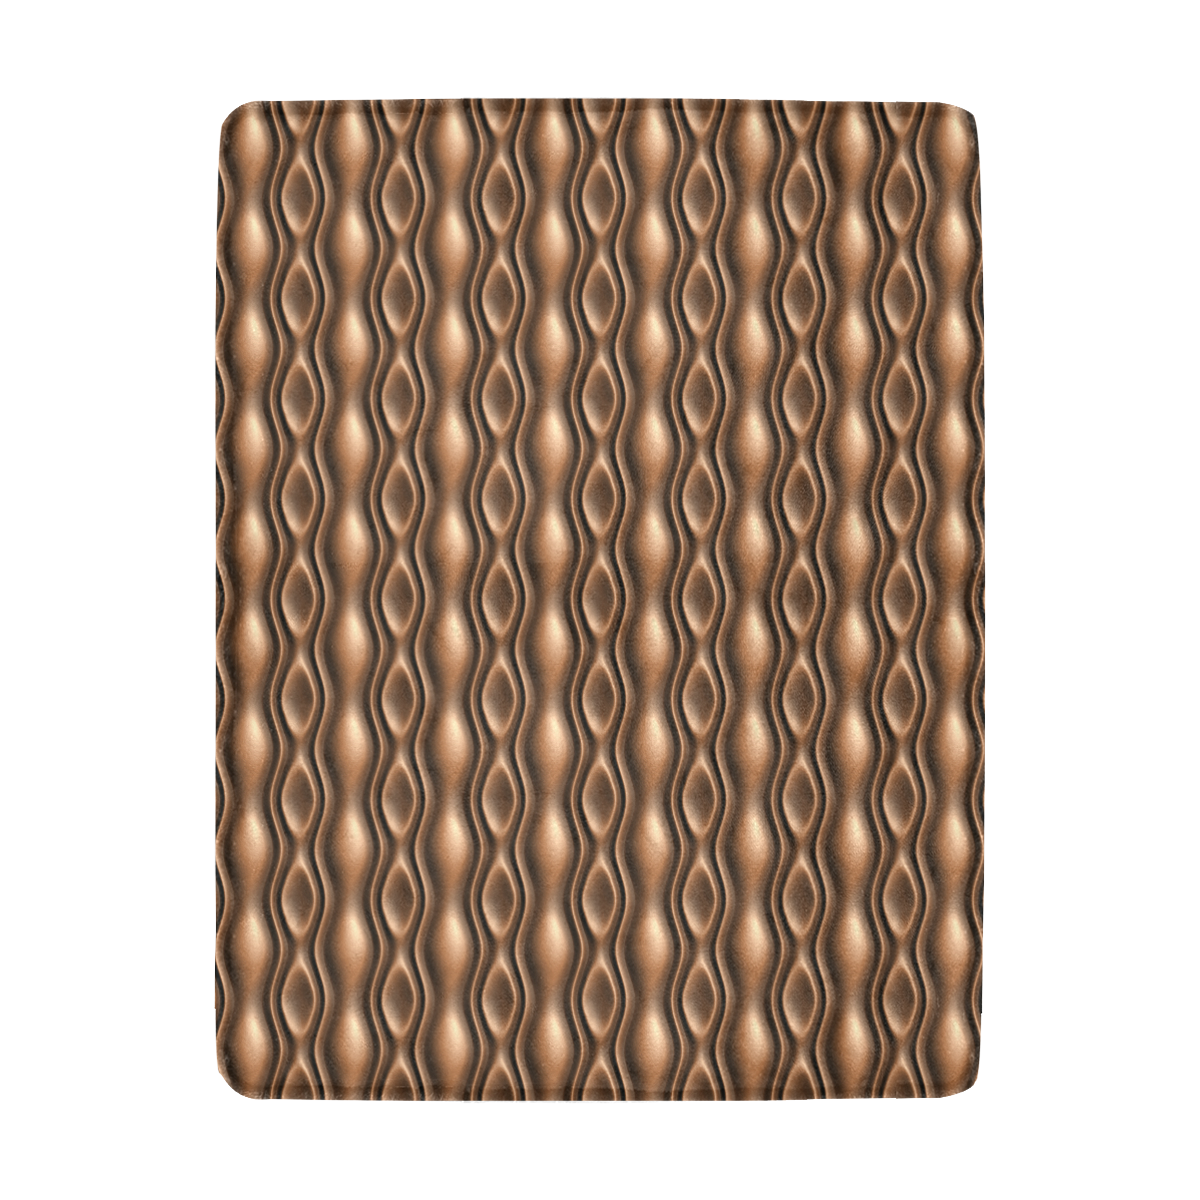 Brown leather abstract wave Ultra-Soft Micro Fleece Blanket 43''x56''